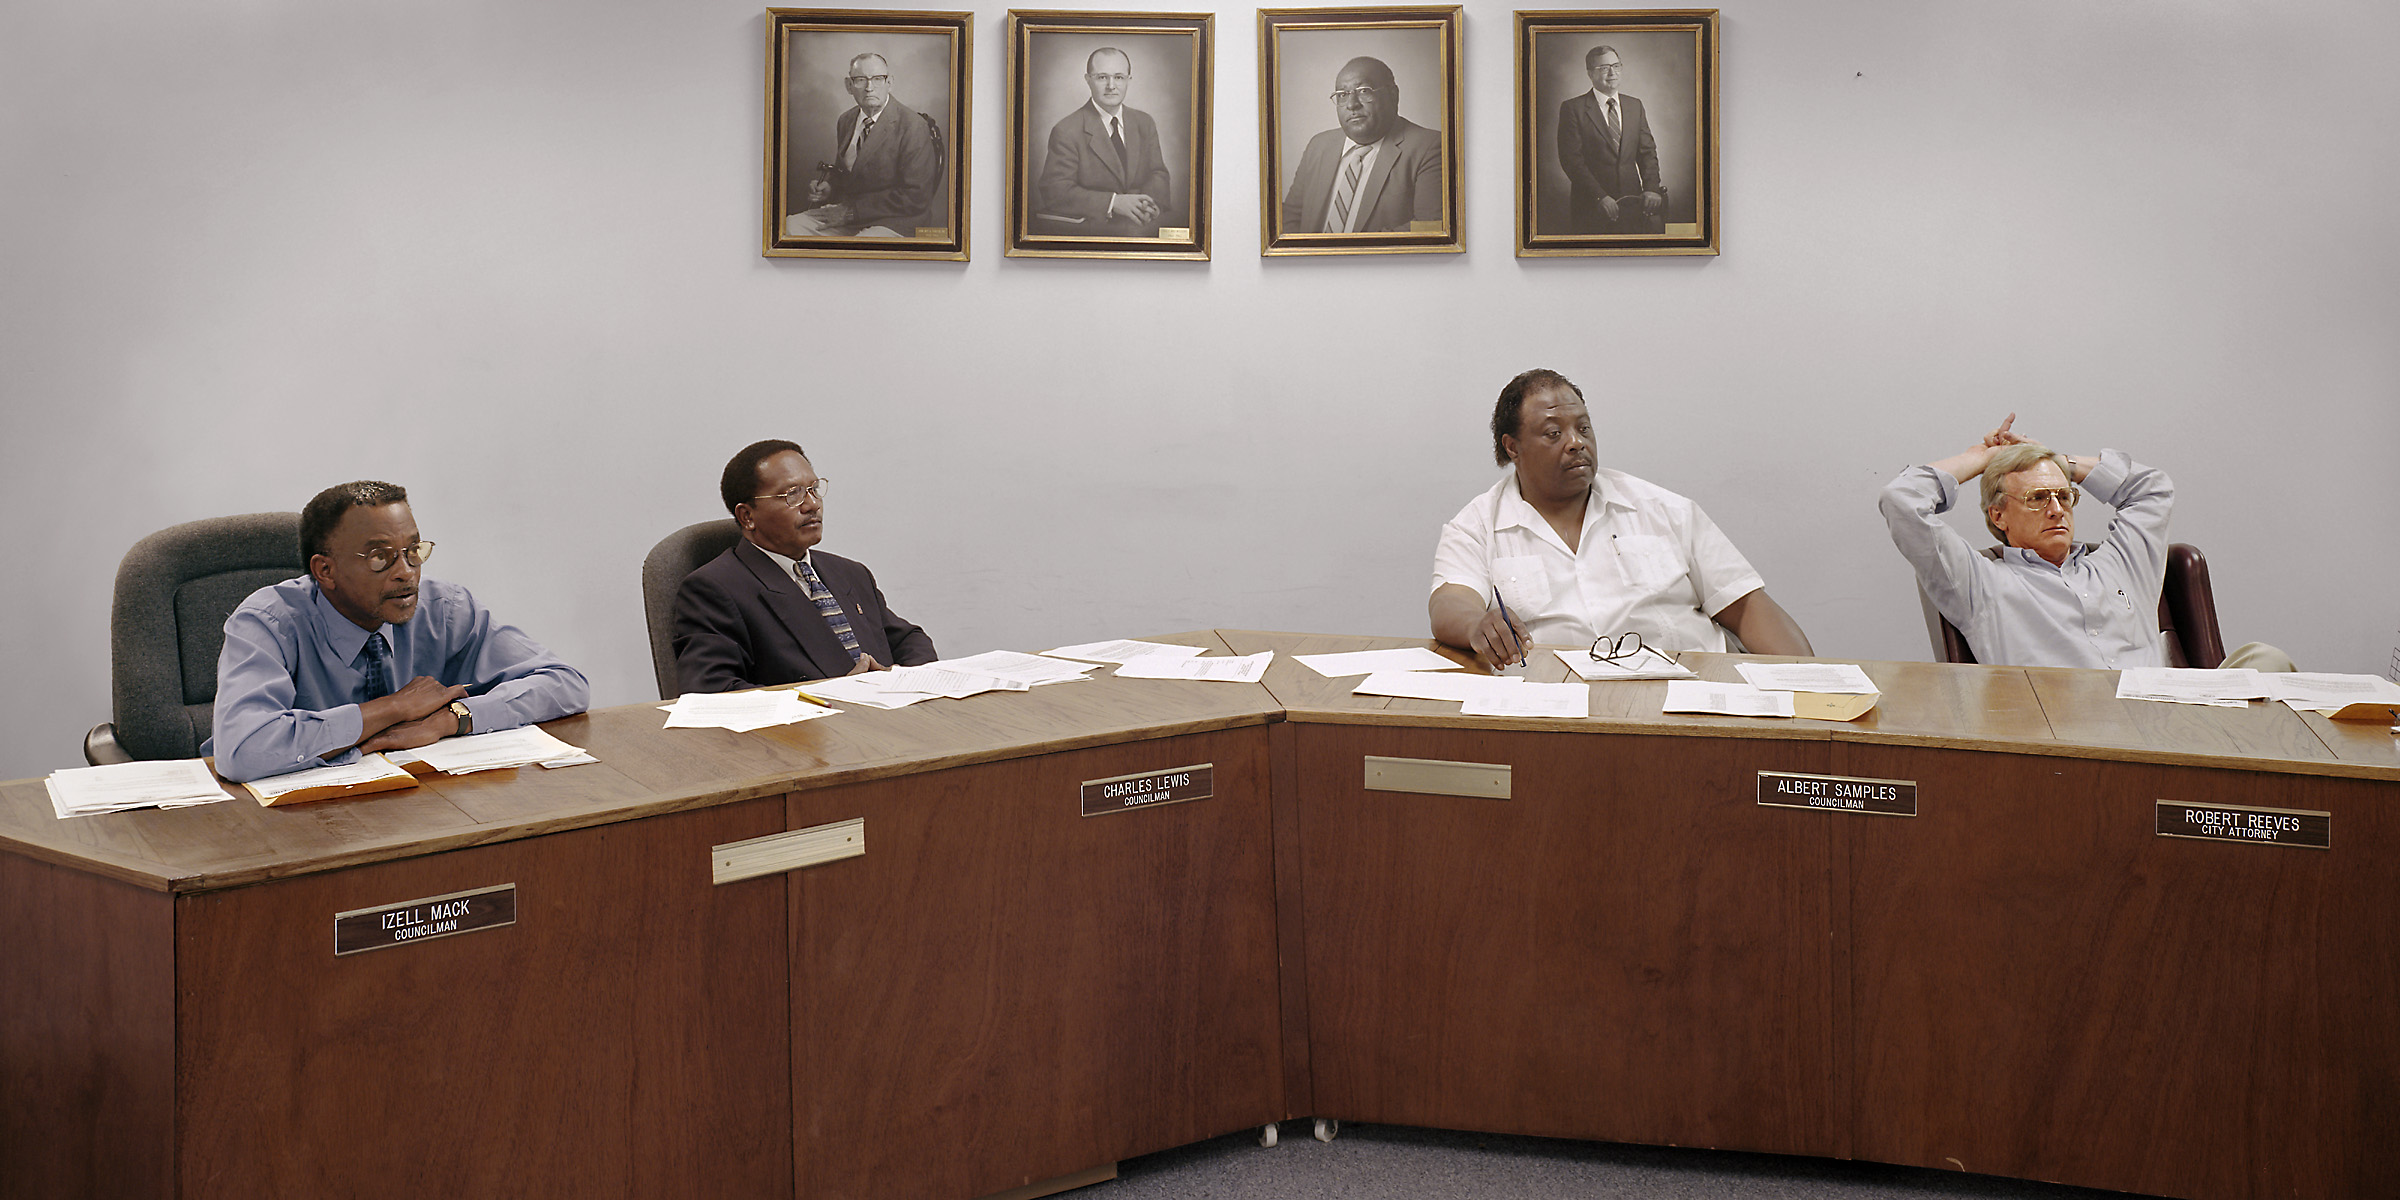 Wadley, Georgia (population 2,468) City Council, August 13, 2001 (L to R): Izell Mack, Charles Lewis, Albert Samples (Mayor), Robert Reeves (City Attorney) 2001.